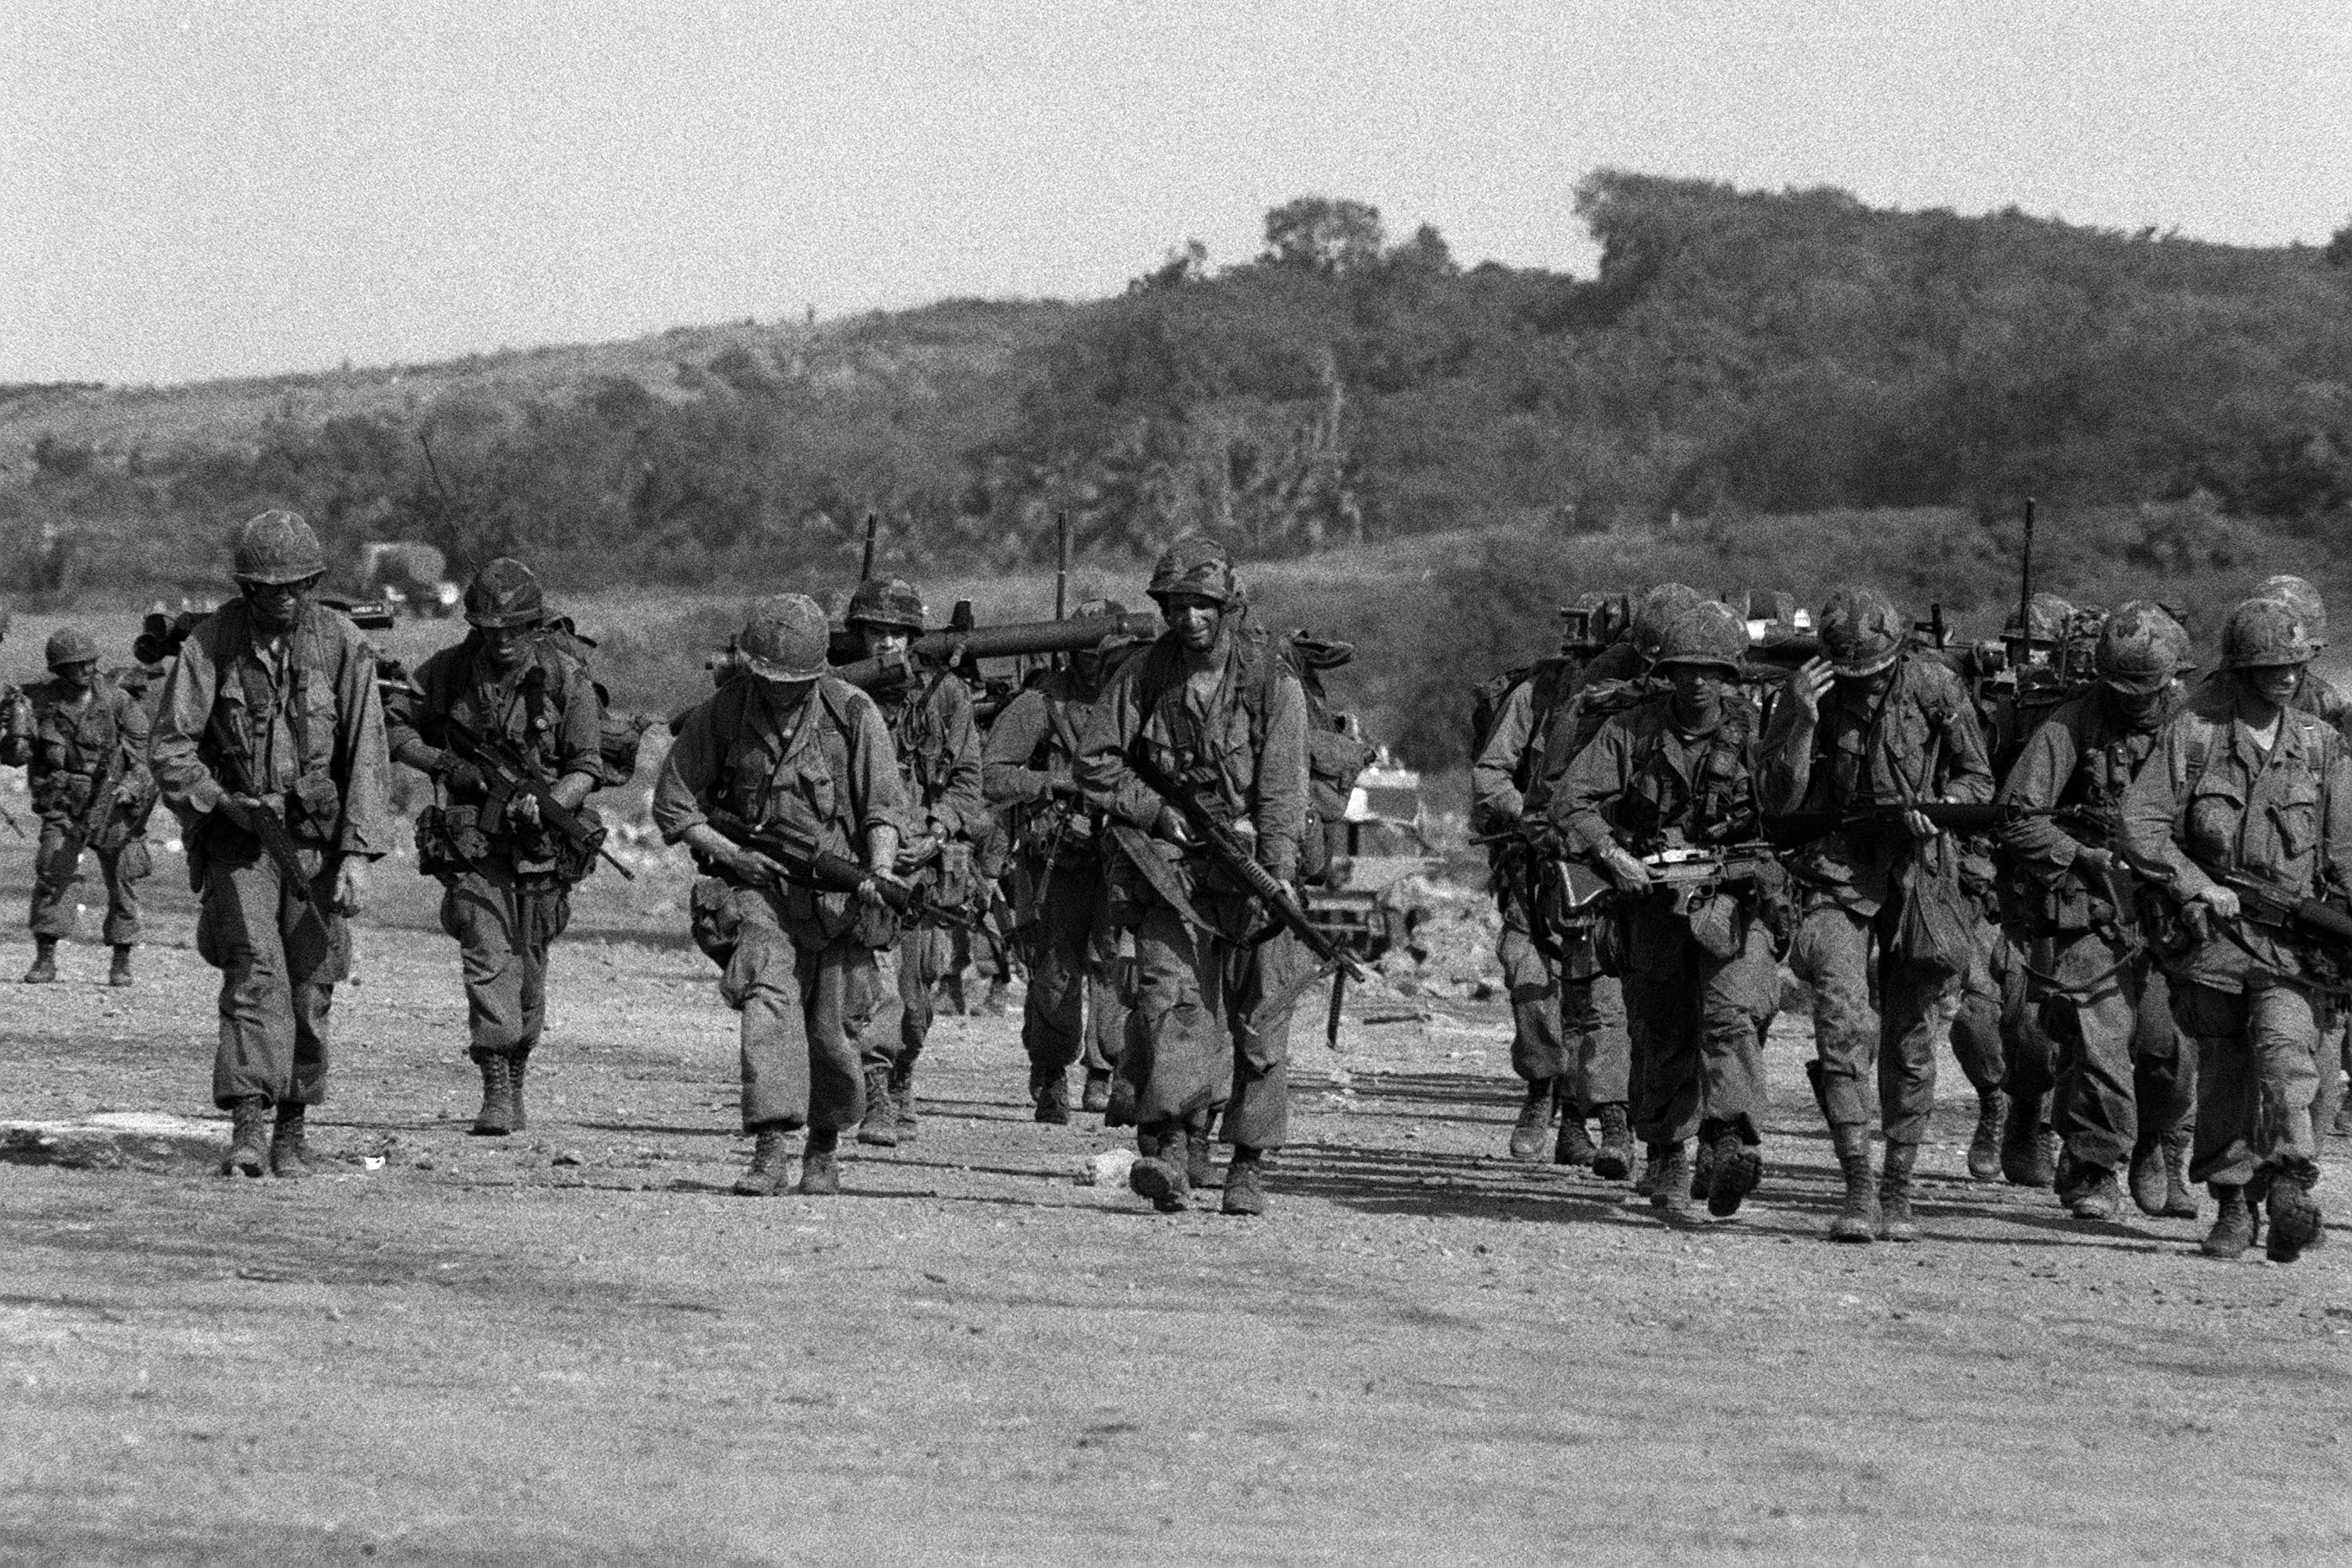 US servicemen at Point Salines Airfield during the multiservice, multinational Operation URGENT FURY